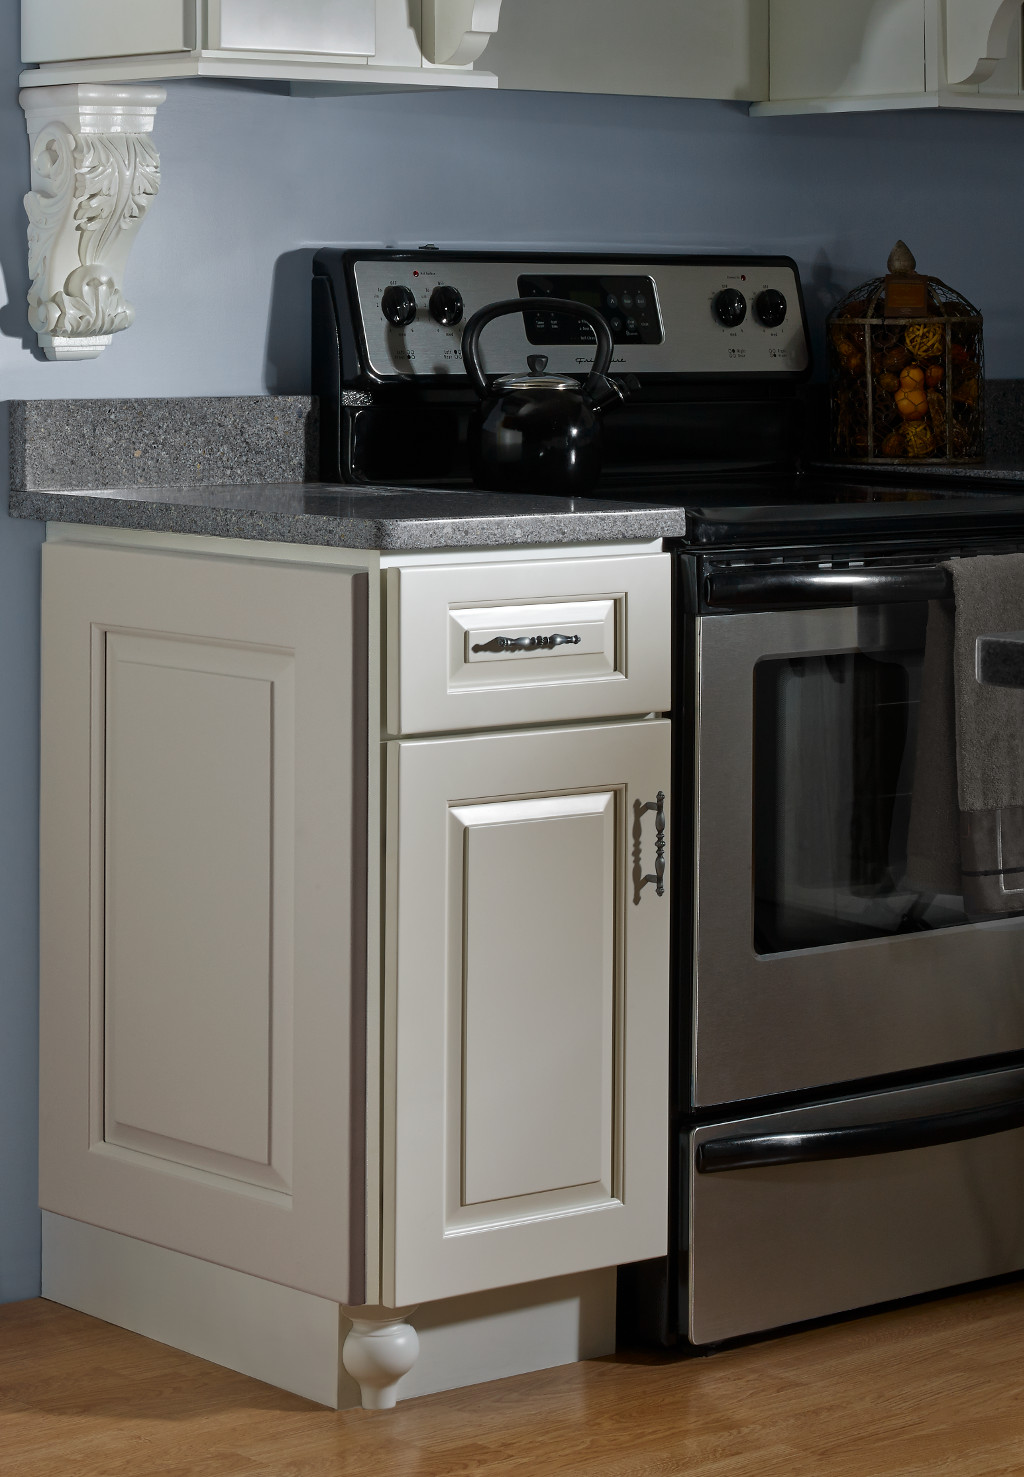 jsi reviews cabinet review size best kitchen of cabinets kith large dover